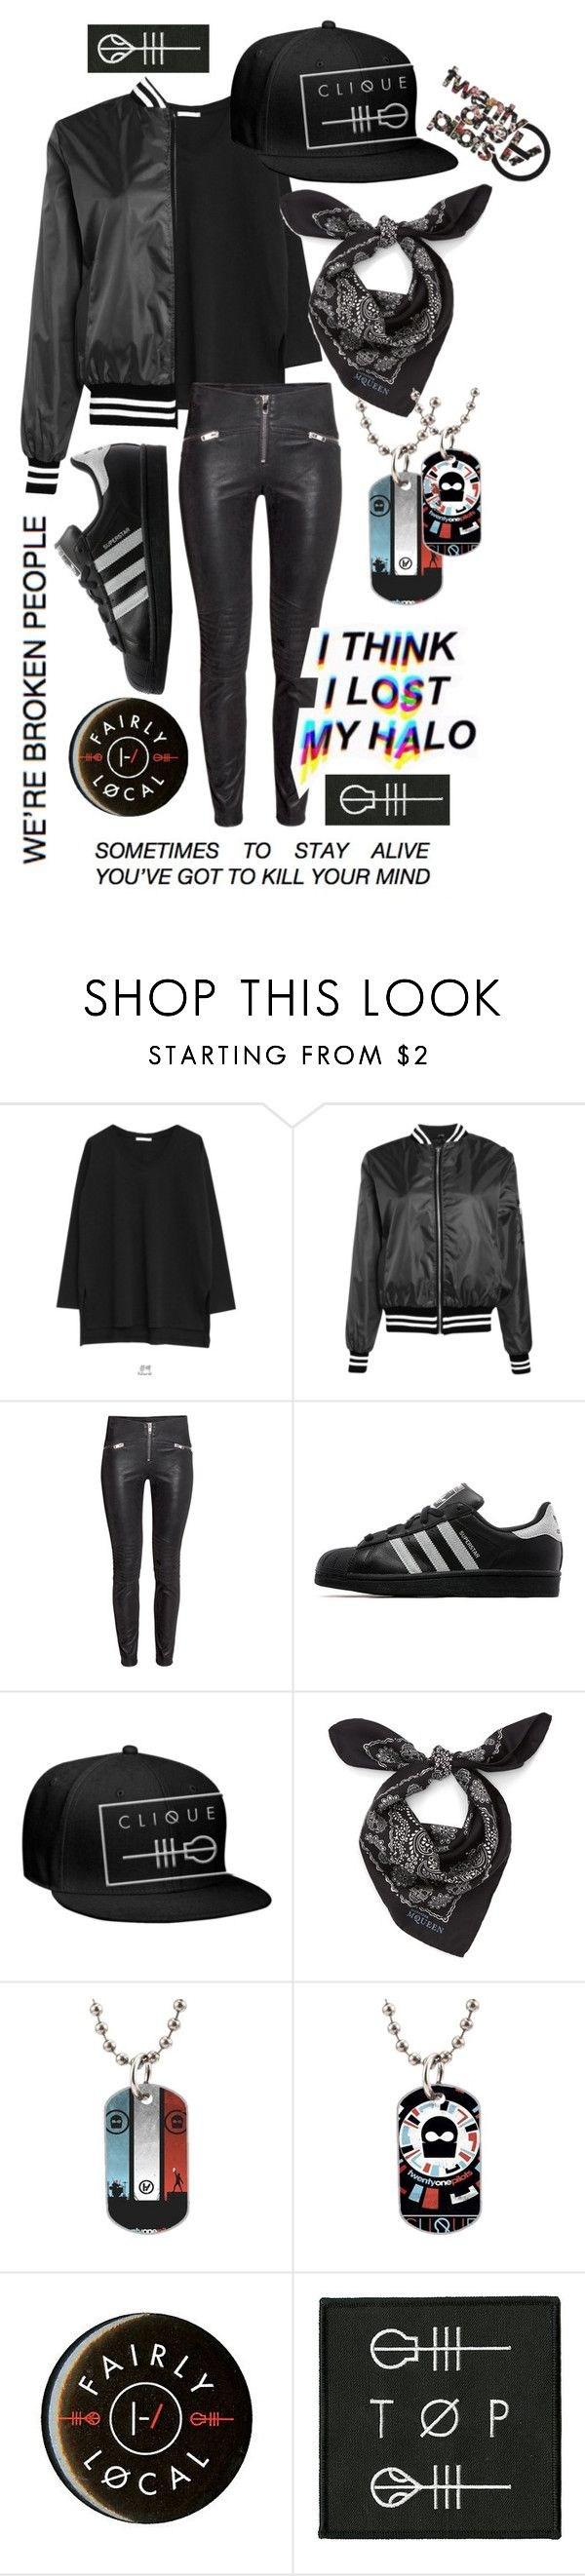 """""""Twenty one pilots's outfit"""" by allisjess ❤ liked on Polyvore featuring Goroke, Boohoo, adidas Originals, Alexander McQueen, women's clothing, women, female, woman, misses and juniors"""